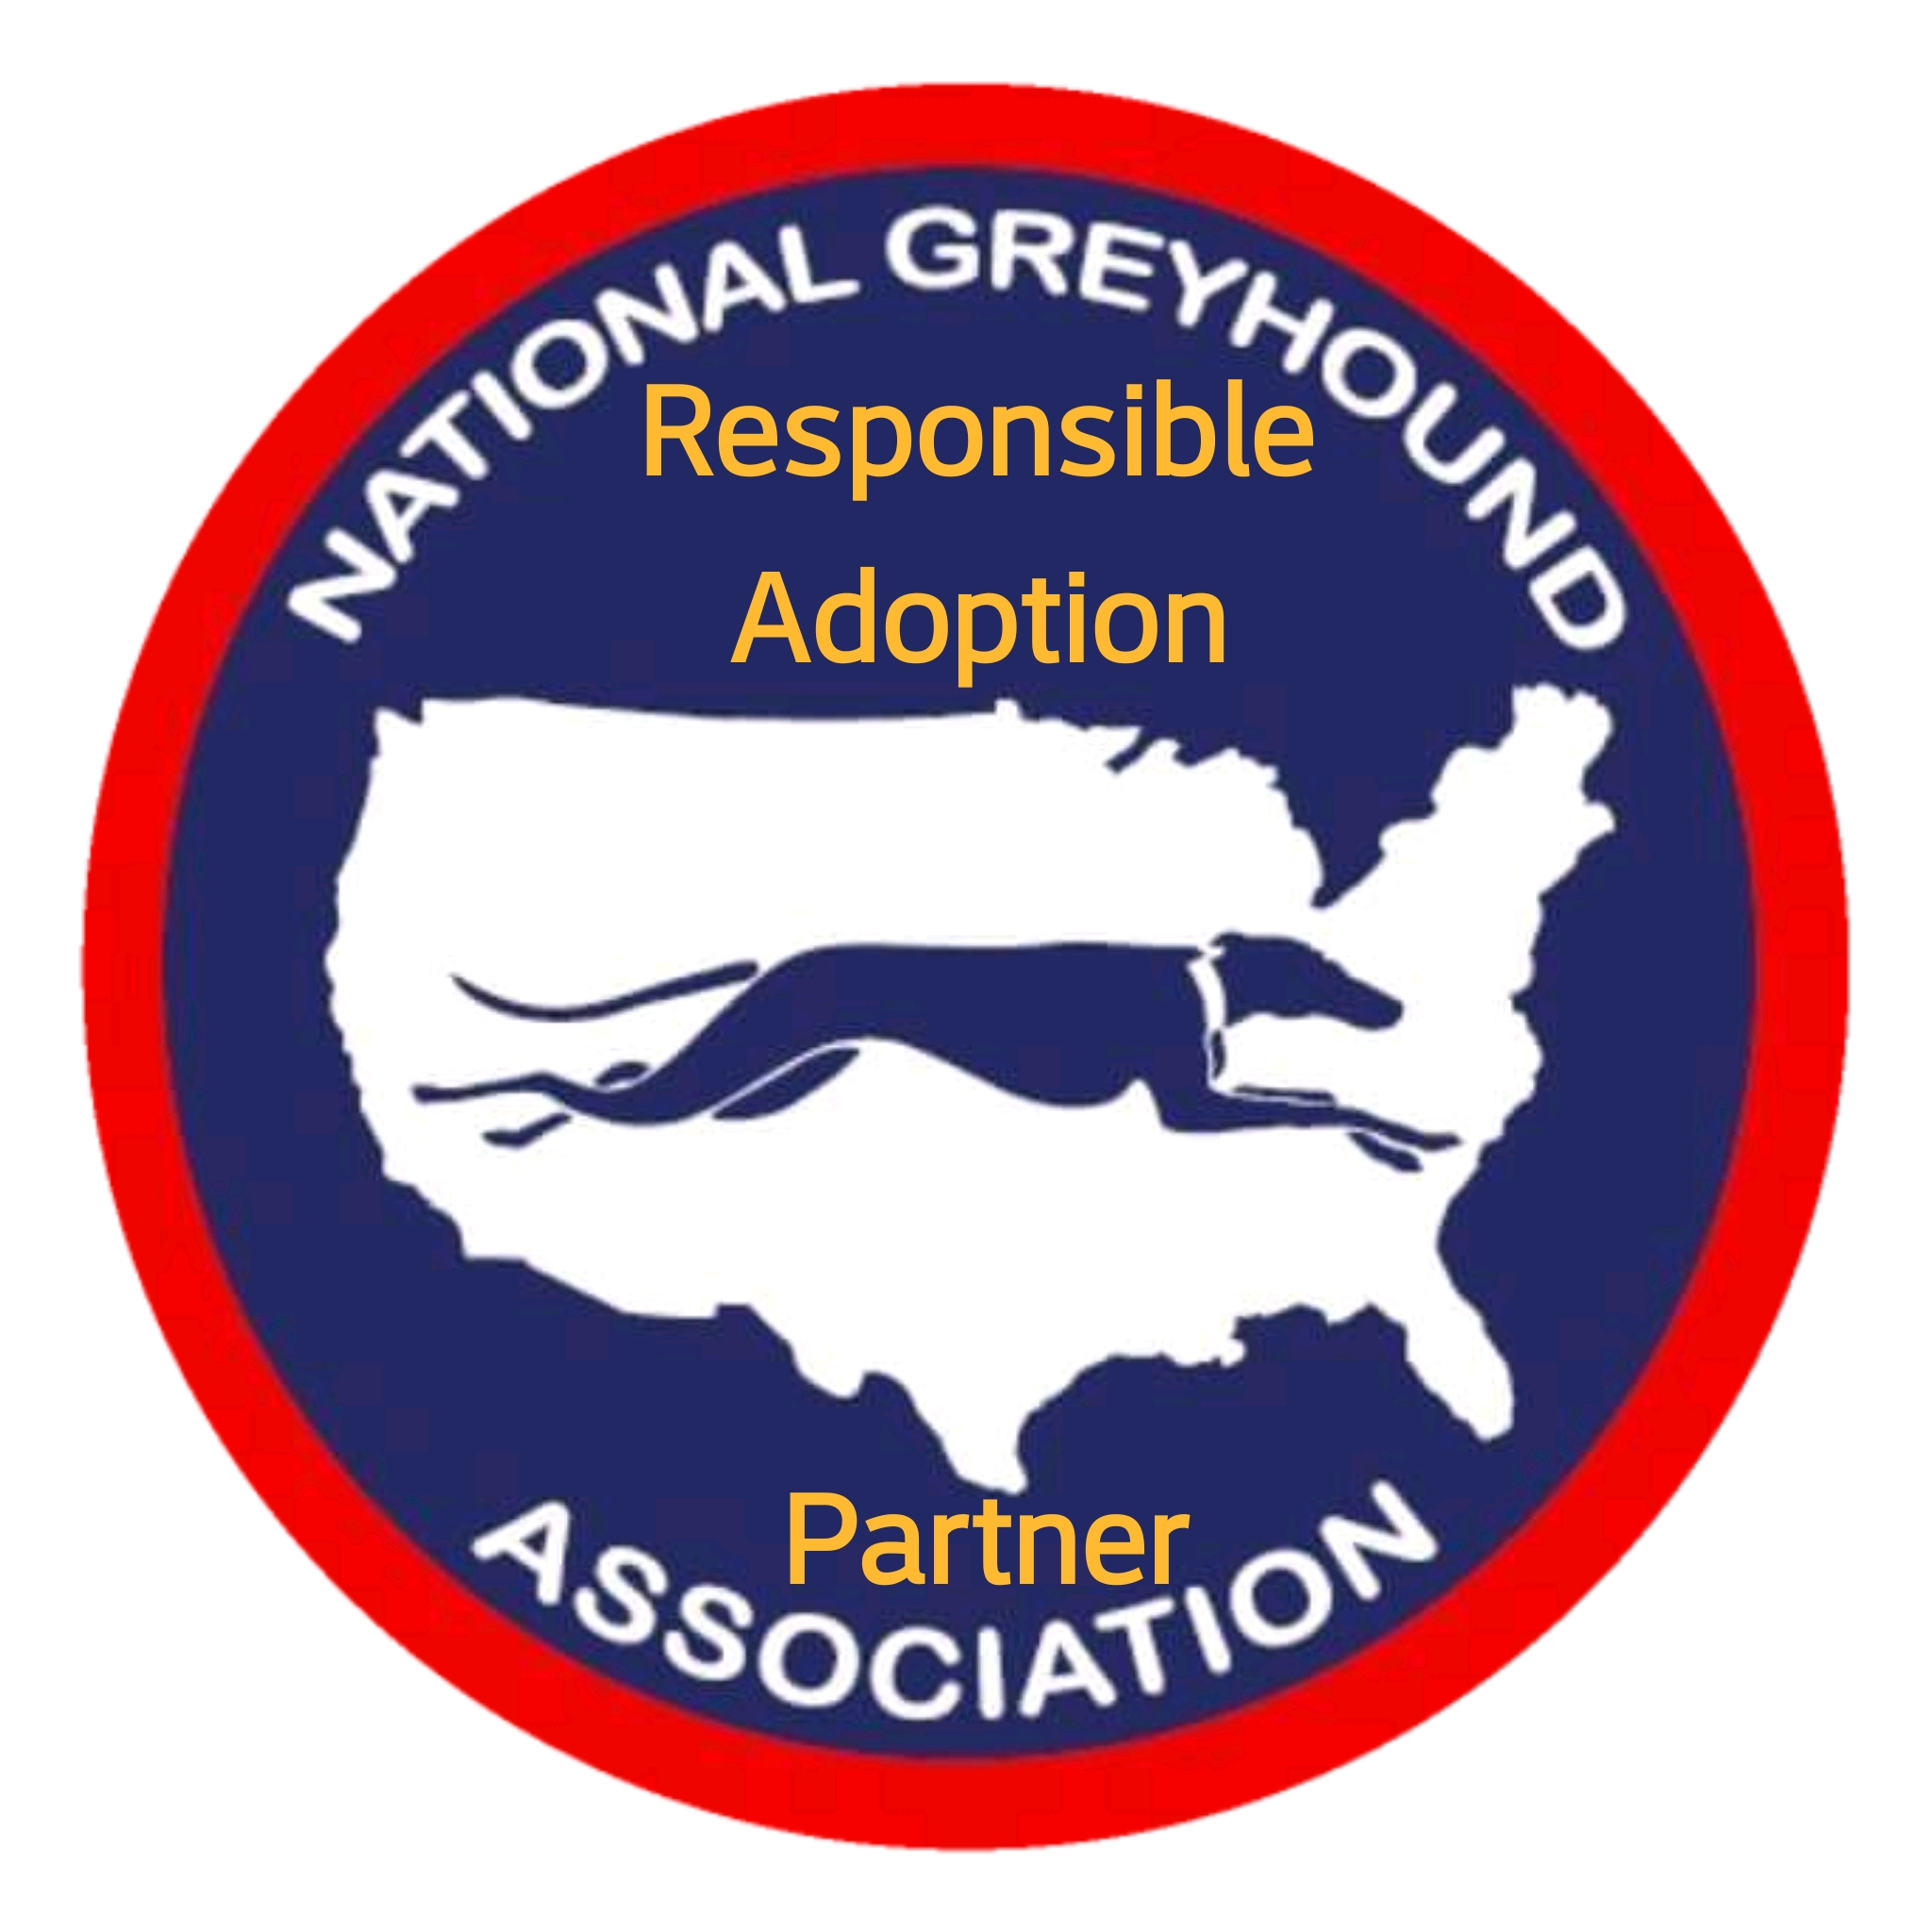 adoption partner logo.jpg